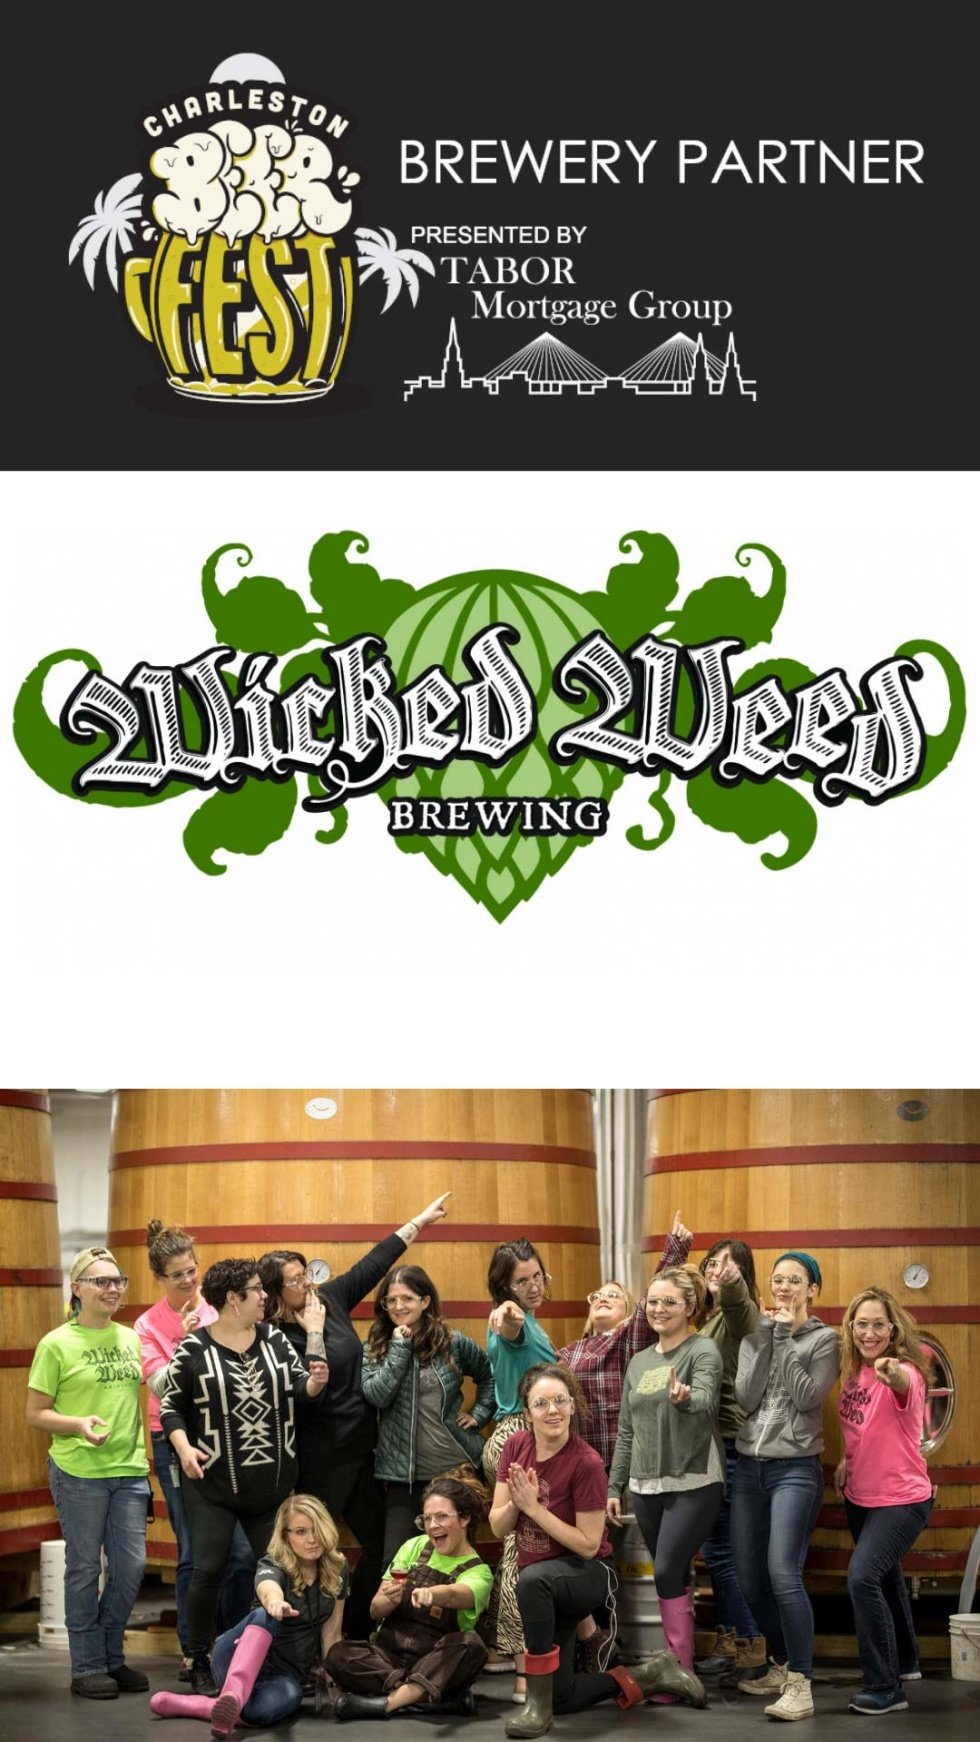 Image of Charleston Beer Fest logo with the text Brewery Partner